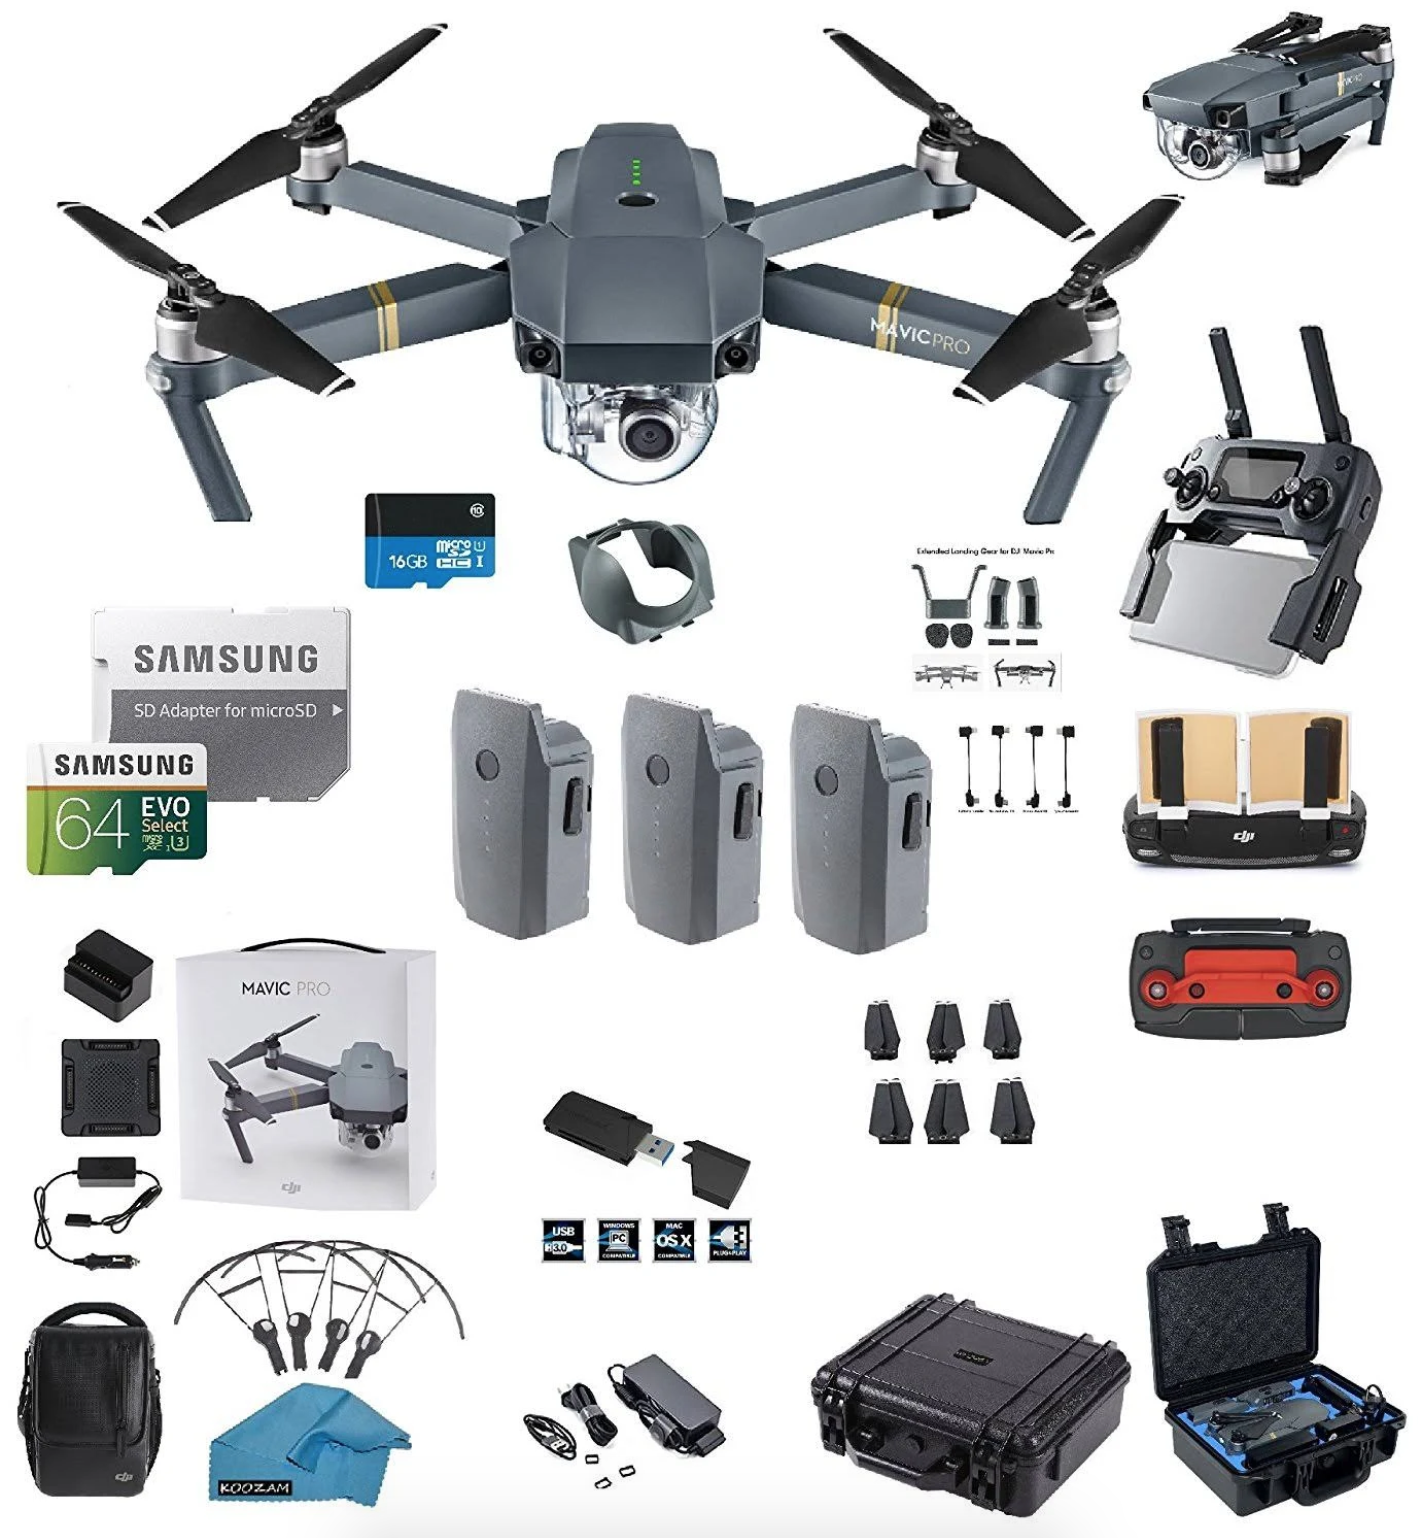 DJI Mavic Pro Bundle with 3 Total Batteries, DJI Bag + 64GB SD Card + Reader, Car Charger, Range Extender, Landing Gear, Prop Guards + HardCase